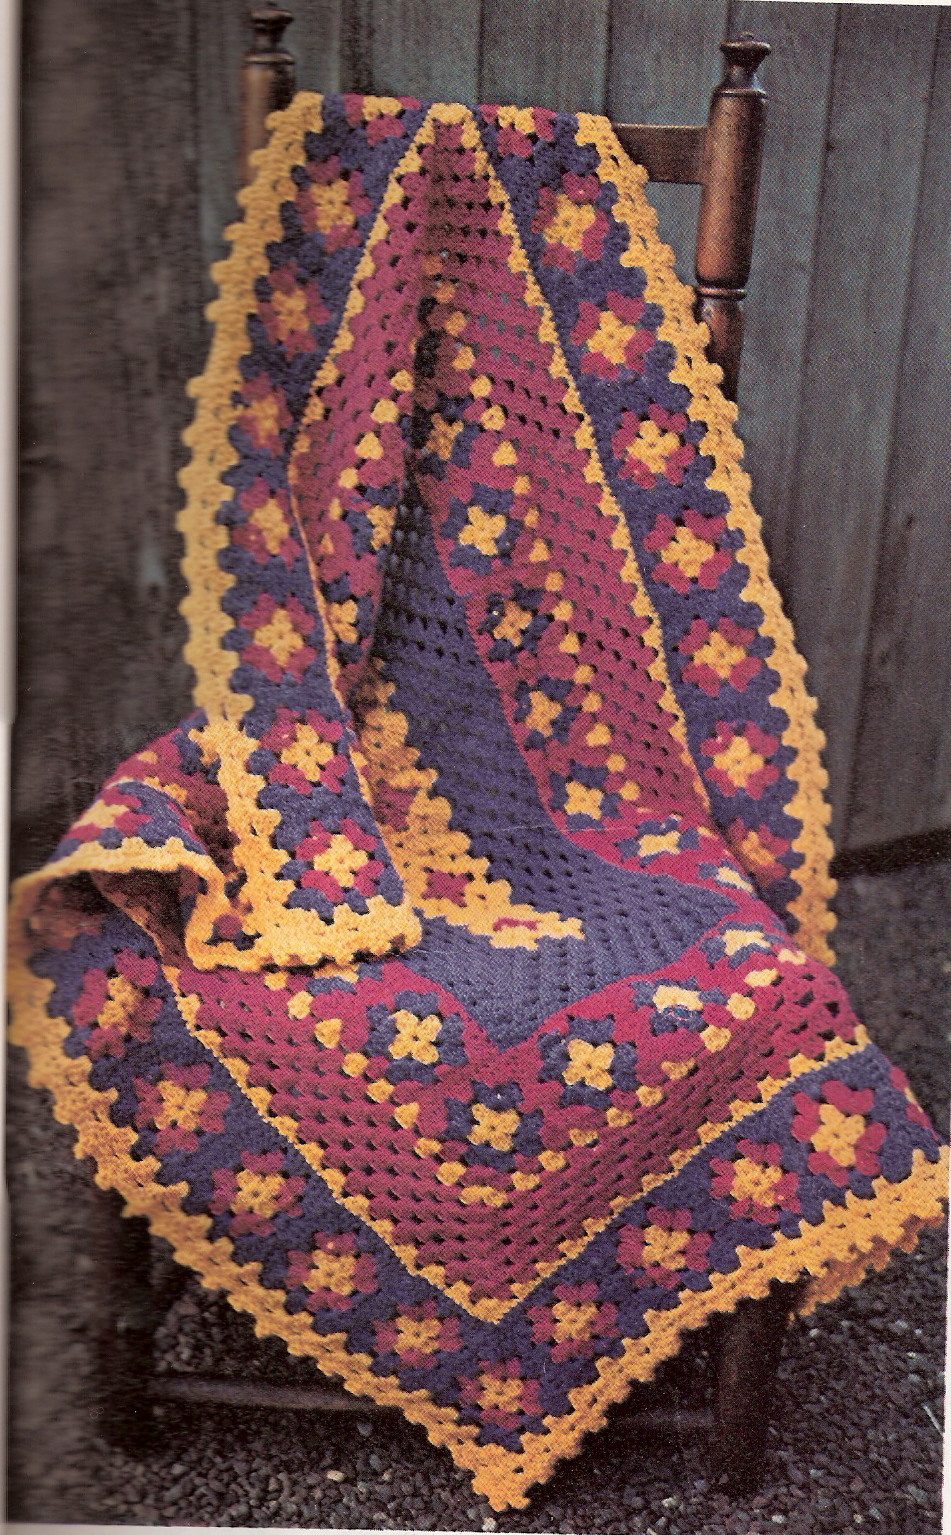 Granny Square Afghan Inspirational Granny Square Crib Afghan Of Adorable 50 Pics Granny Square Afghan